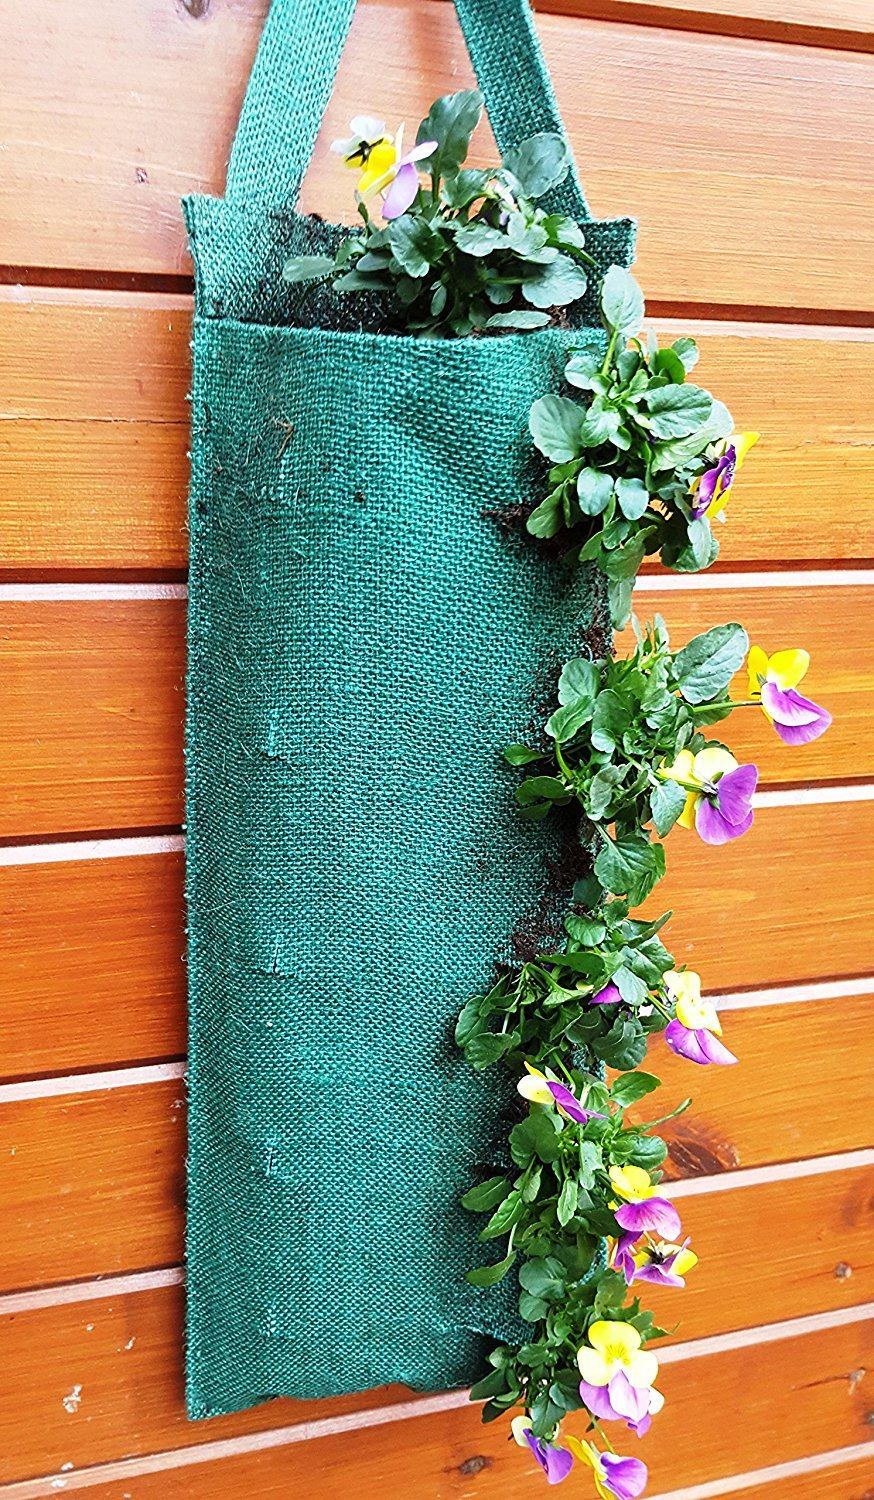 2 x Jute Fabric Hanging Planter Grow Bag Plant Pouch - Tomato Herb Flower Strawberry Growing Bags S&MC Gardenware